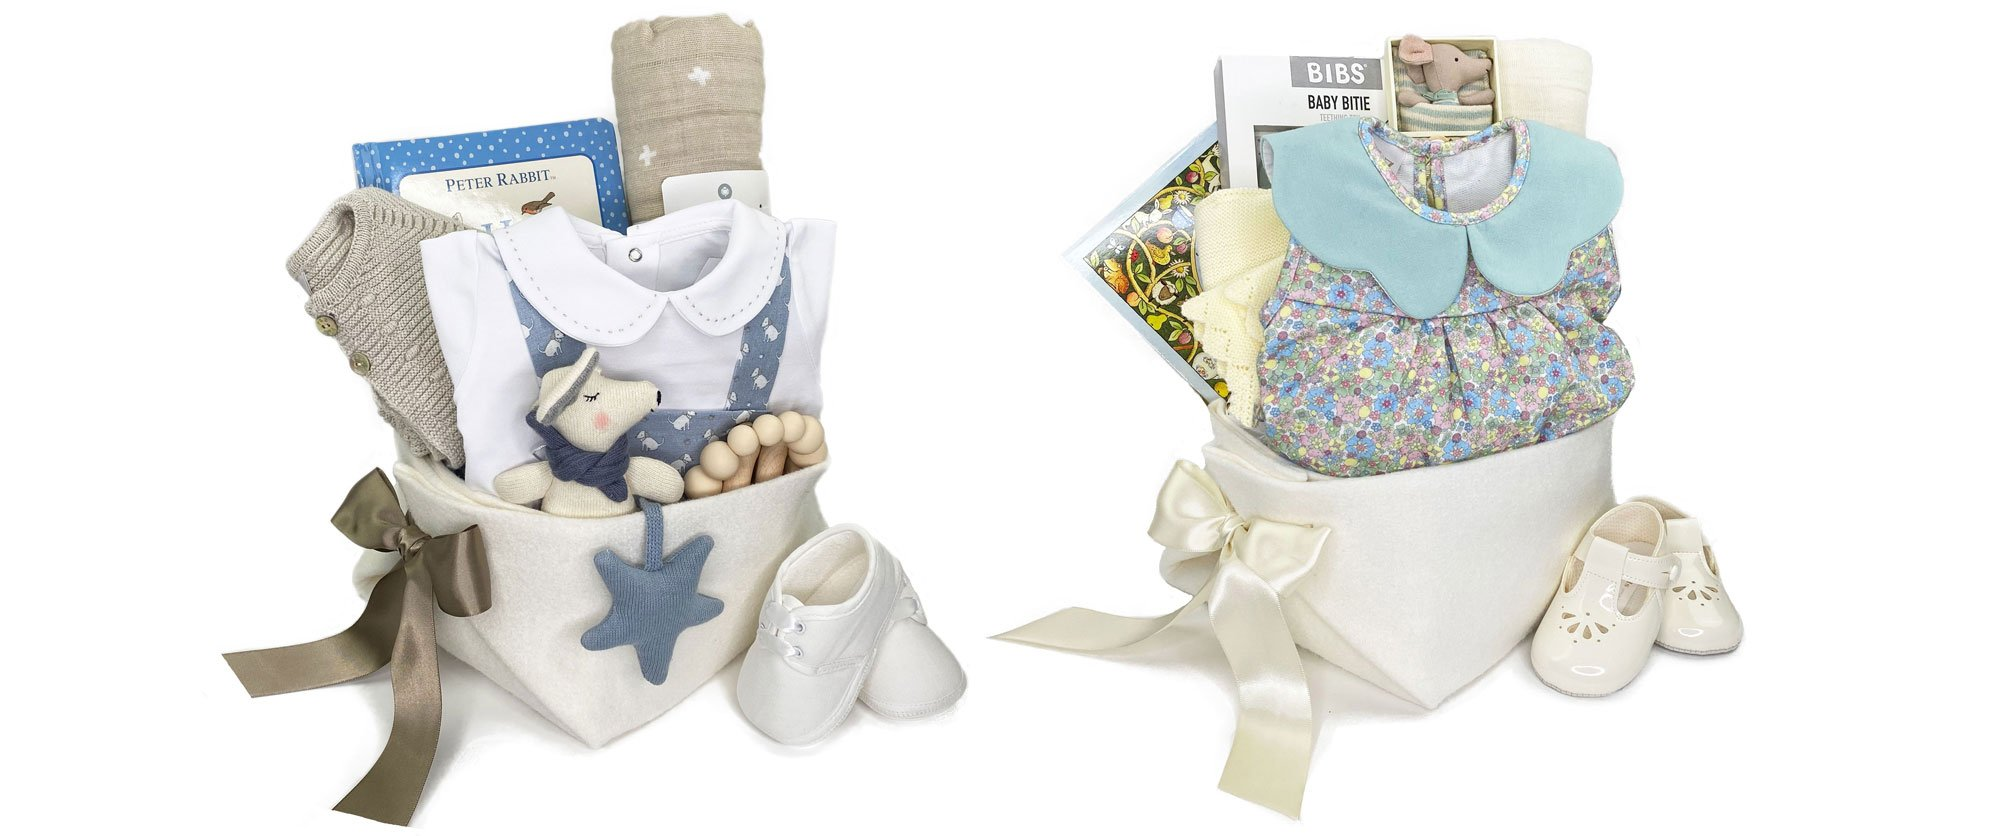 Bonjour Baby Baskets Luxury Baby Gifts